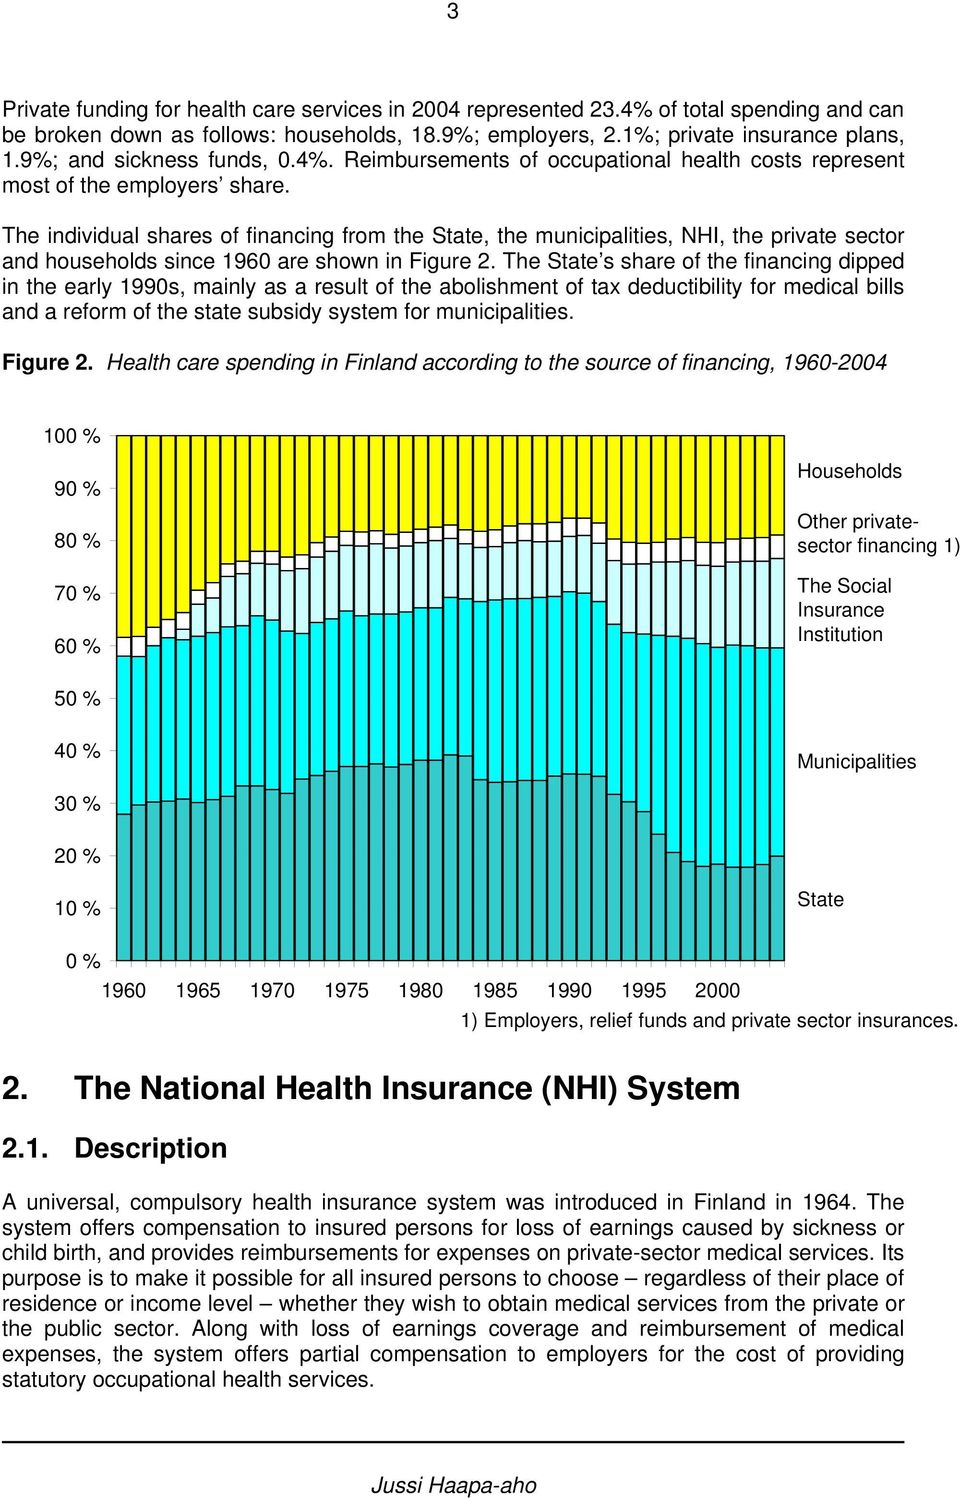 The individual shares of financing from the State, the municipalities, NHI, the private sector and households since 1960 are shown in Figure 2.